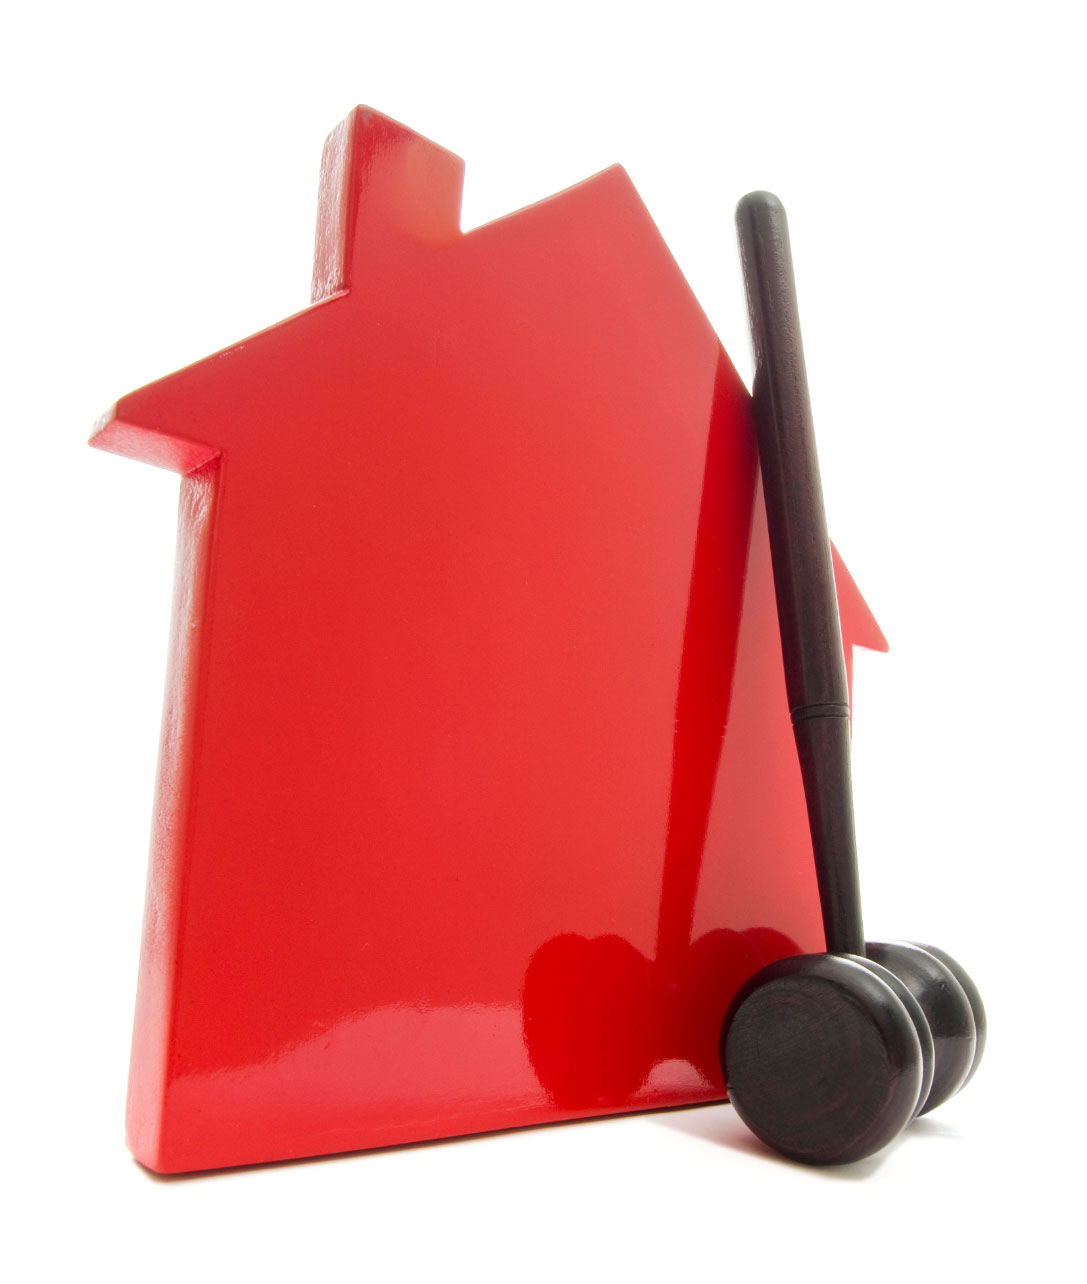 red house with gavel